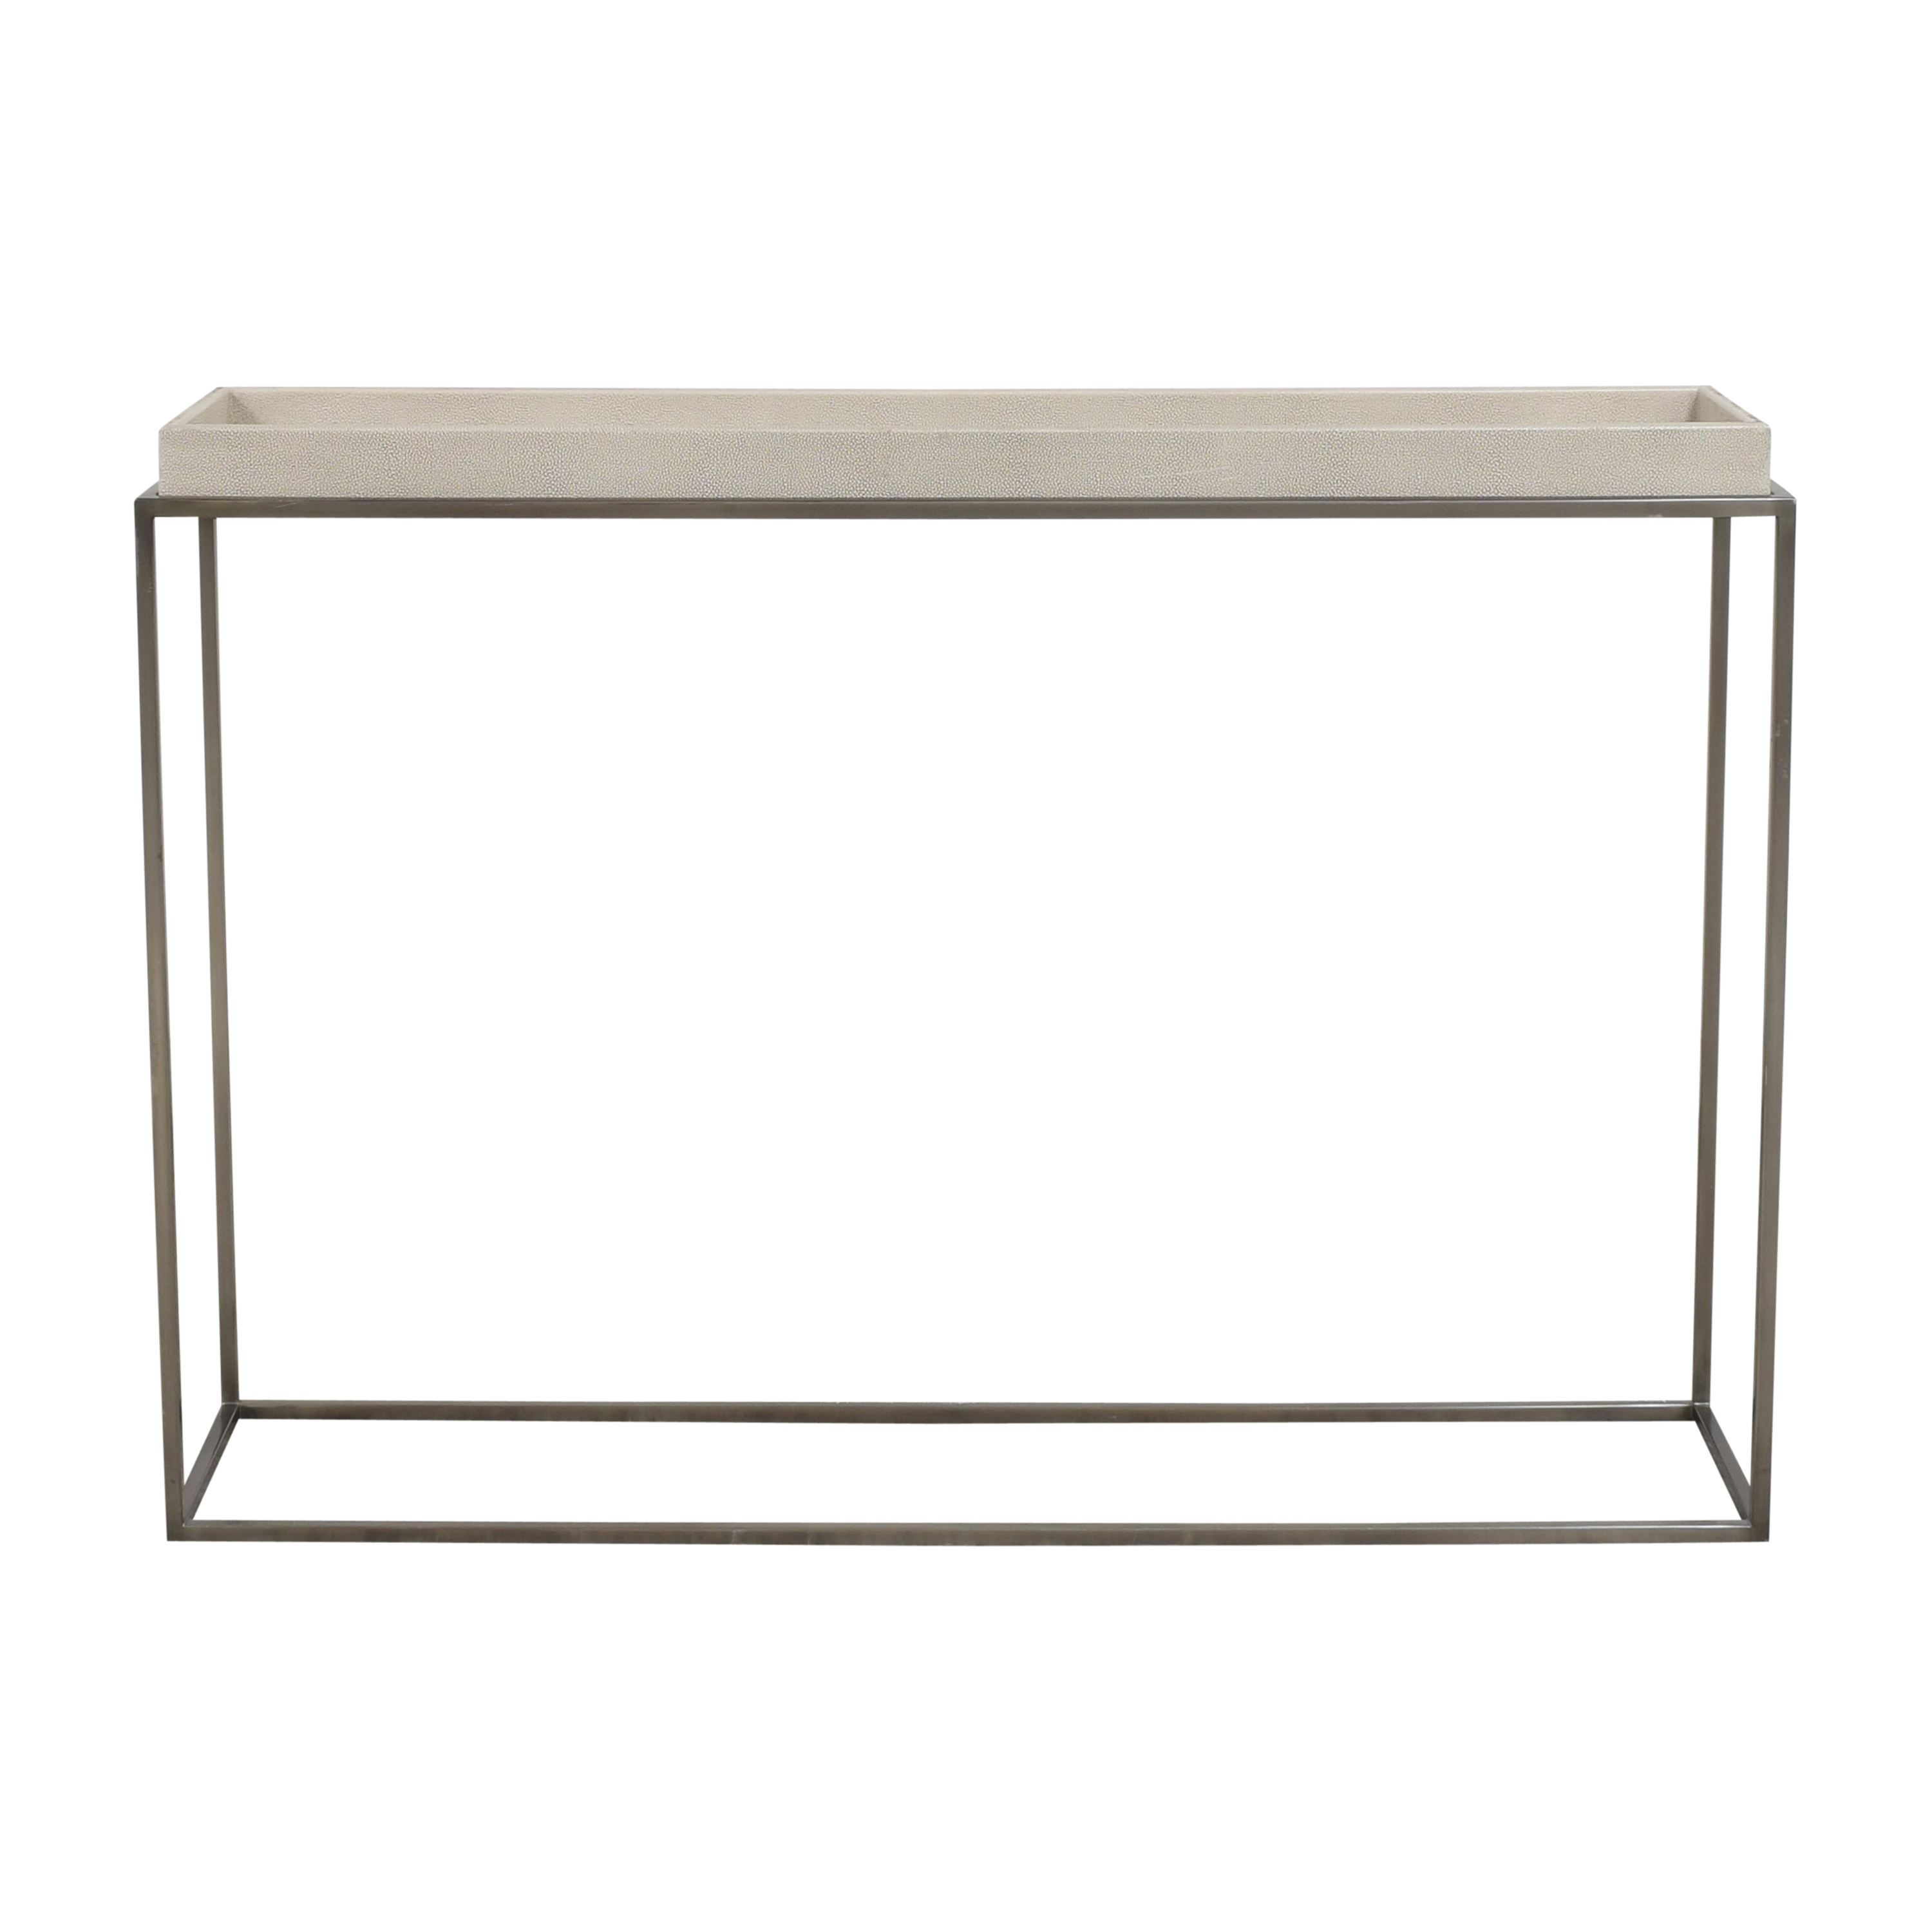 Restoration Hardware Restoration Hardware Hudson Shagreen Tray Console Table beige and silver